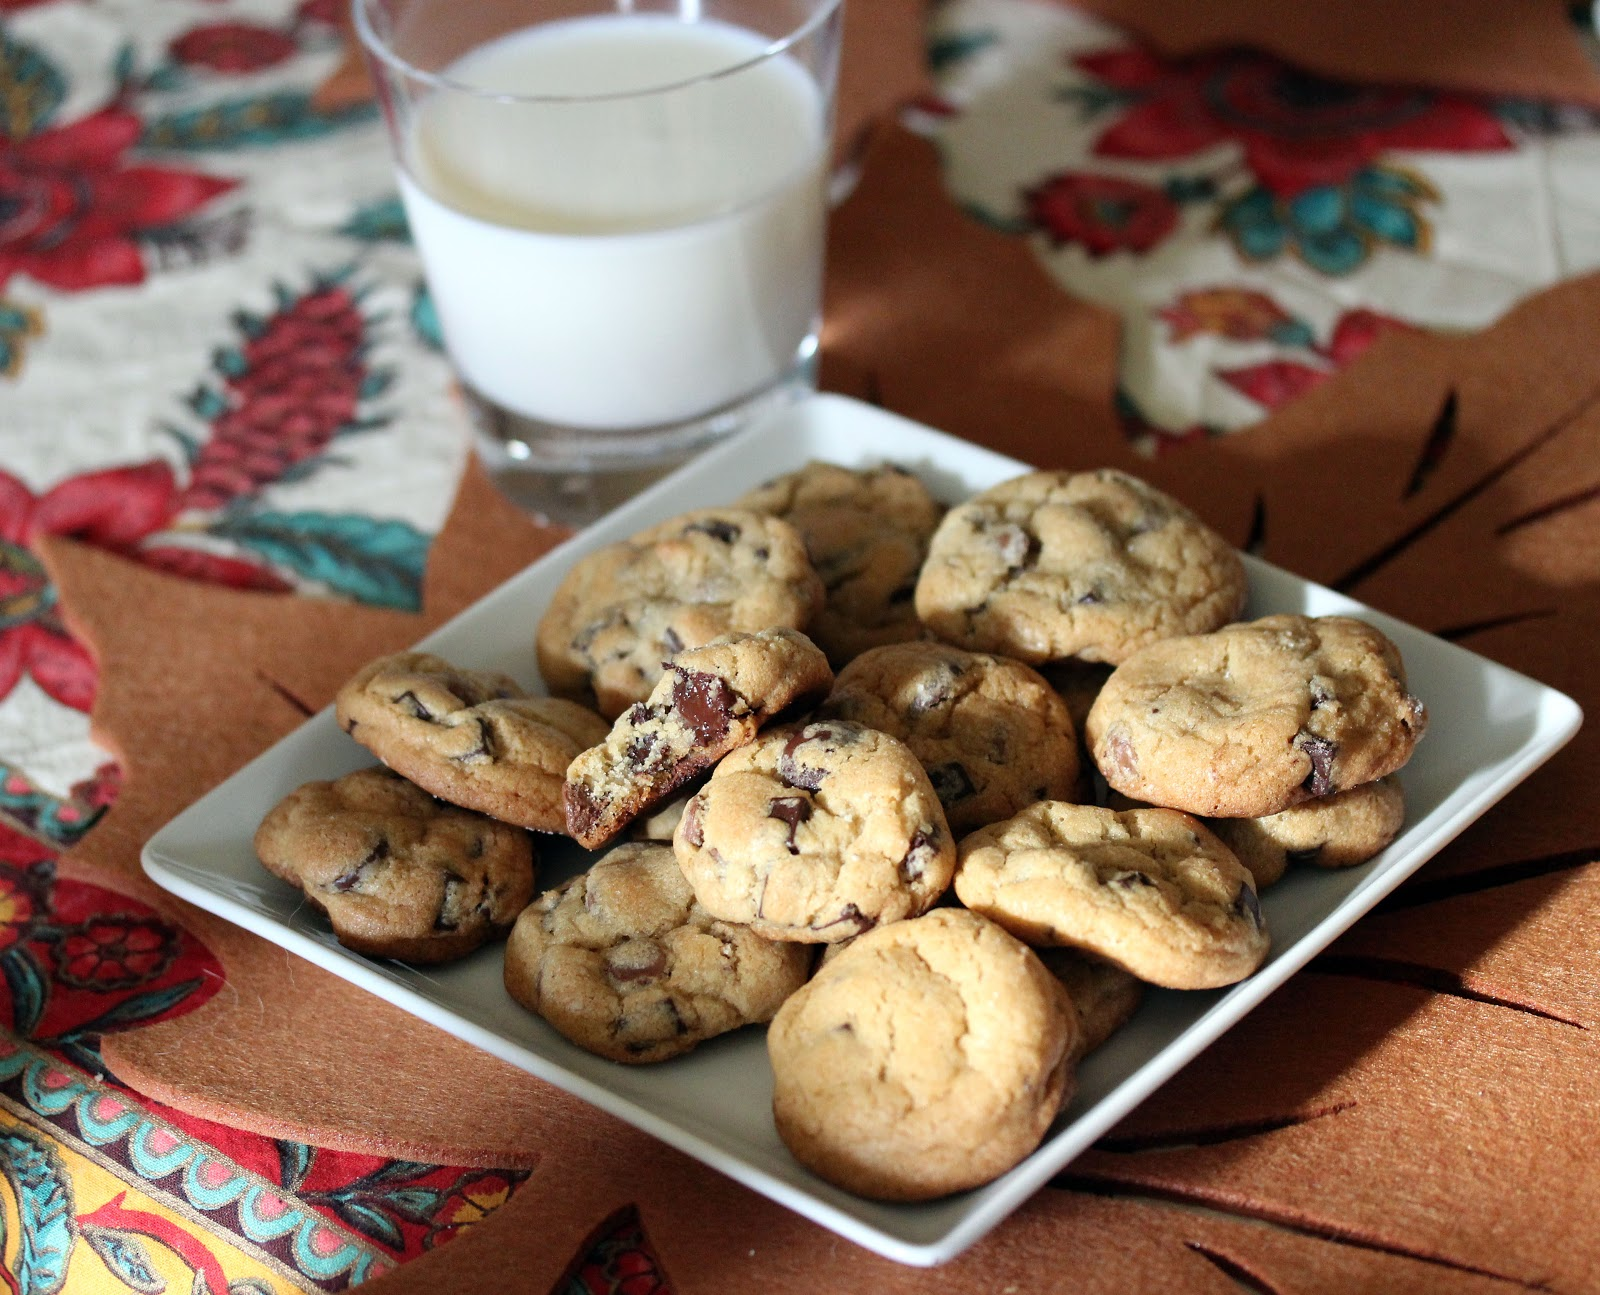 The Dinner Club: Jacques Torres Chocolate Chip Cookies